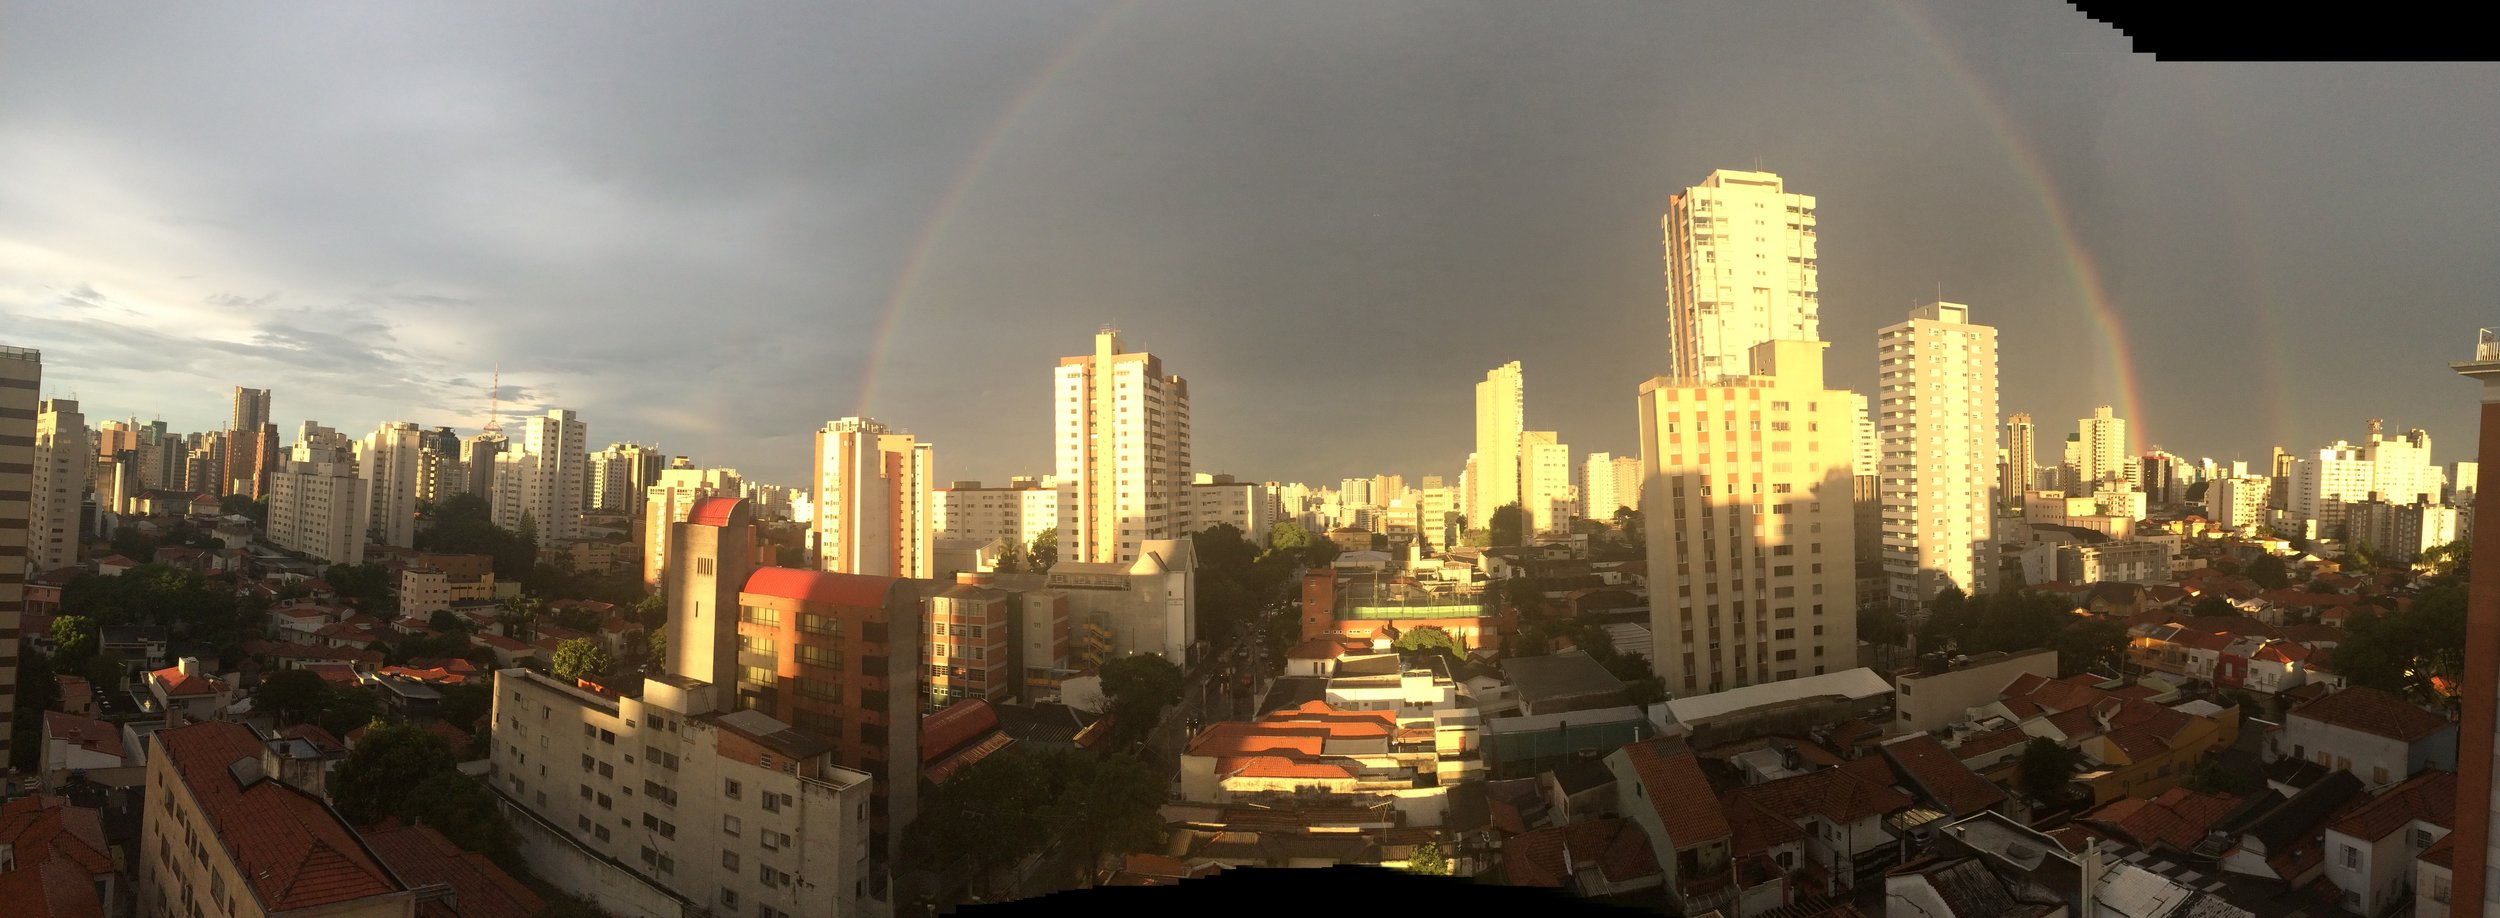 The view from our Airbnb after a rain shower